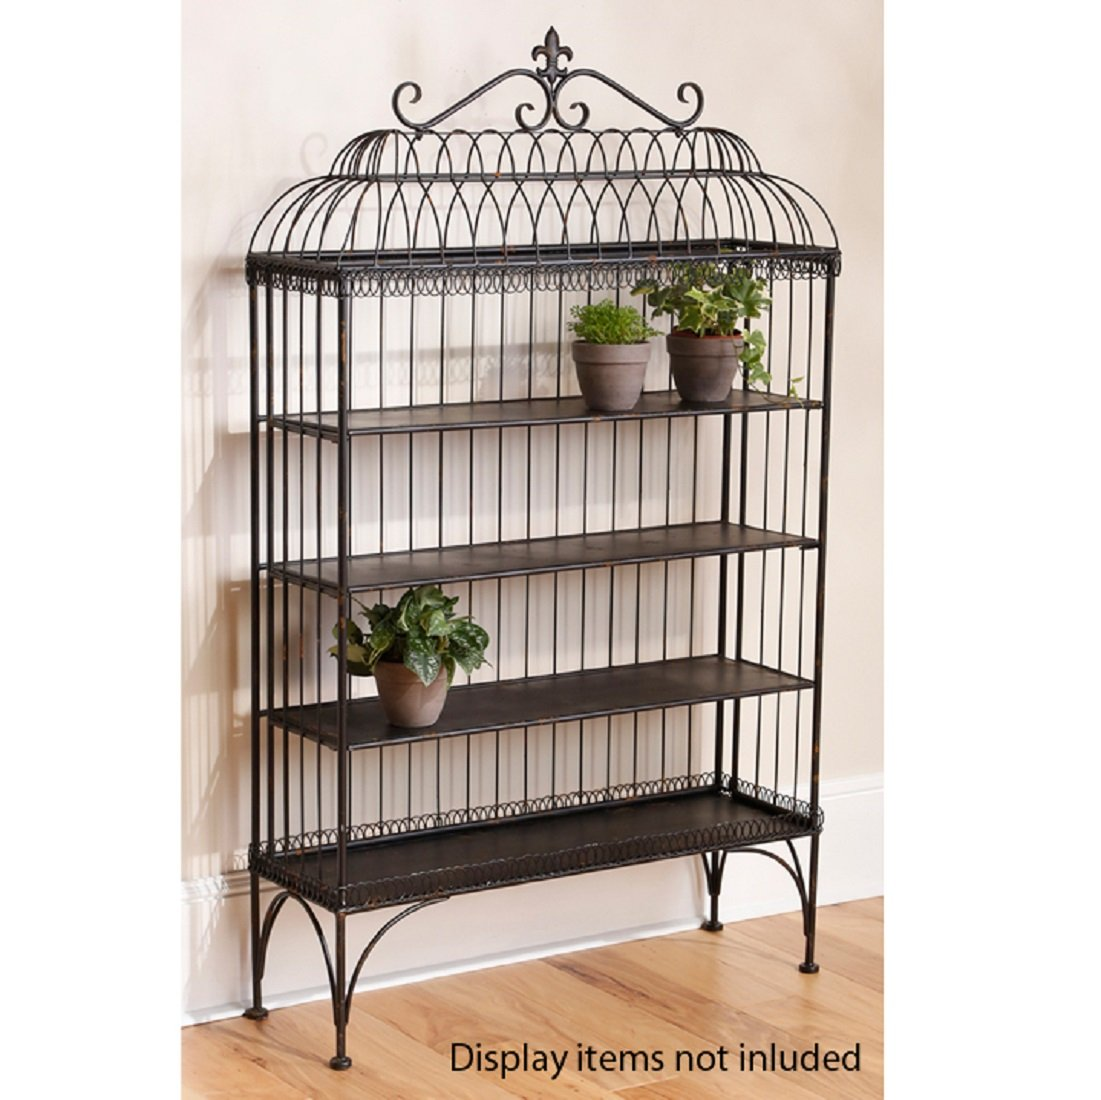 60'' Black Garden Gate Shelf Furniture by Raz